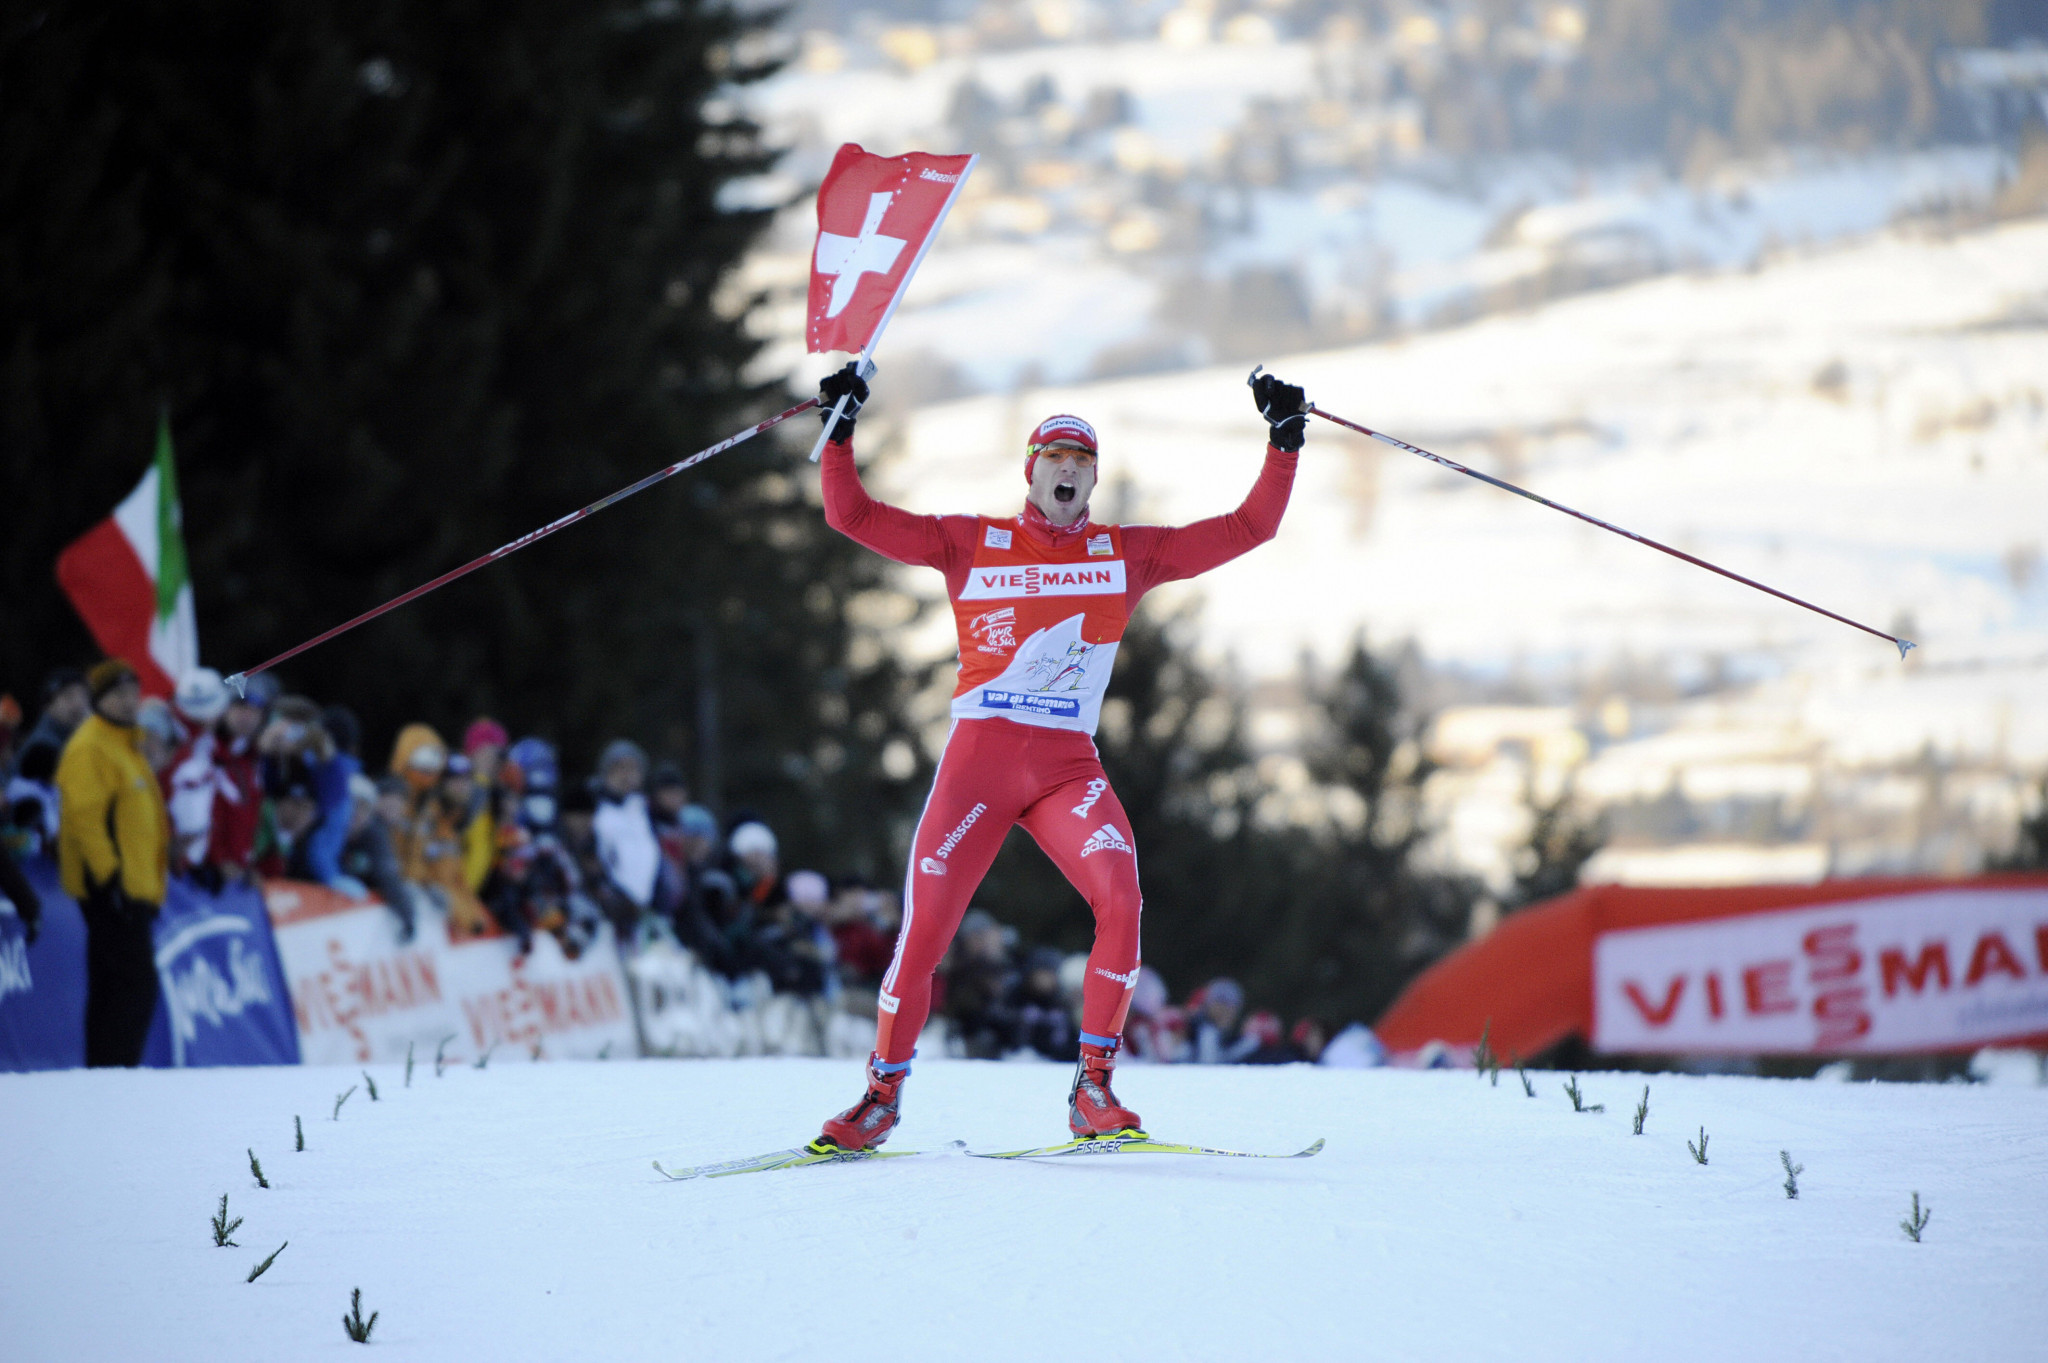 FIS World Cup events in Switzerland set to welcome fans vaccinated against COVID-19